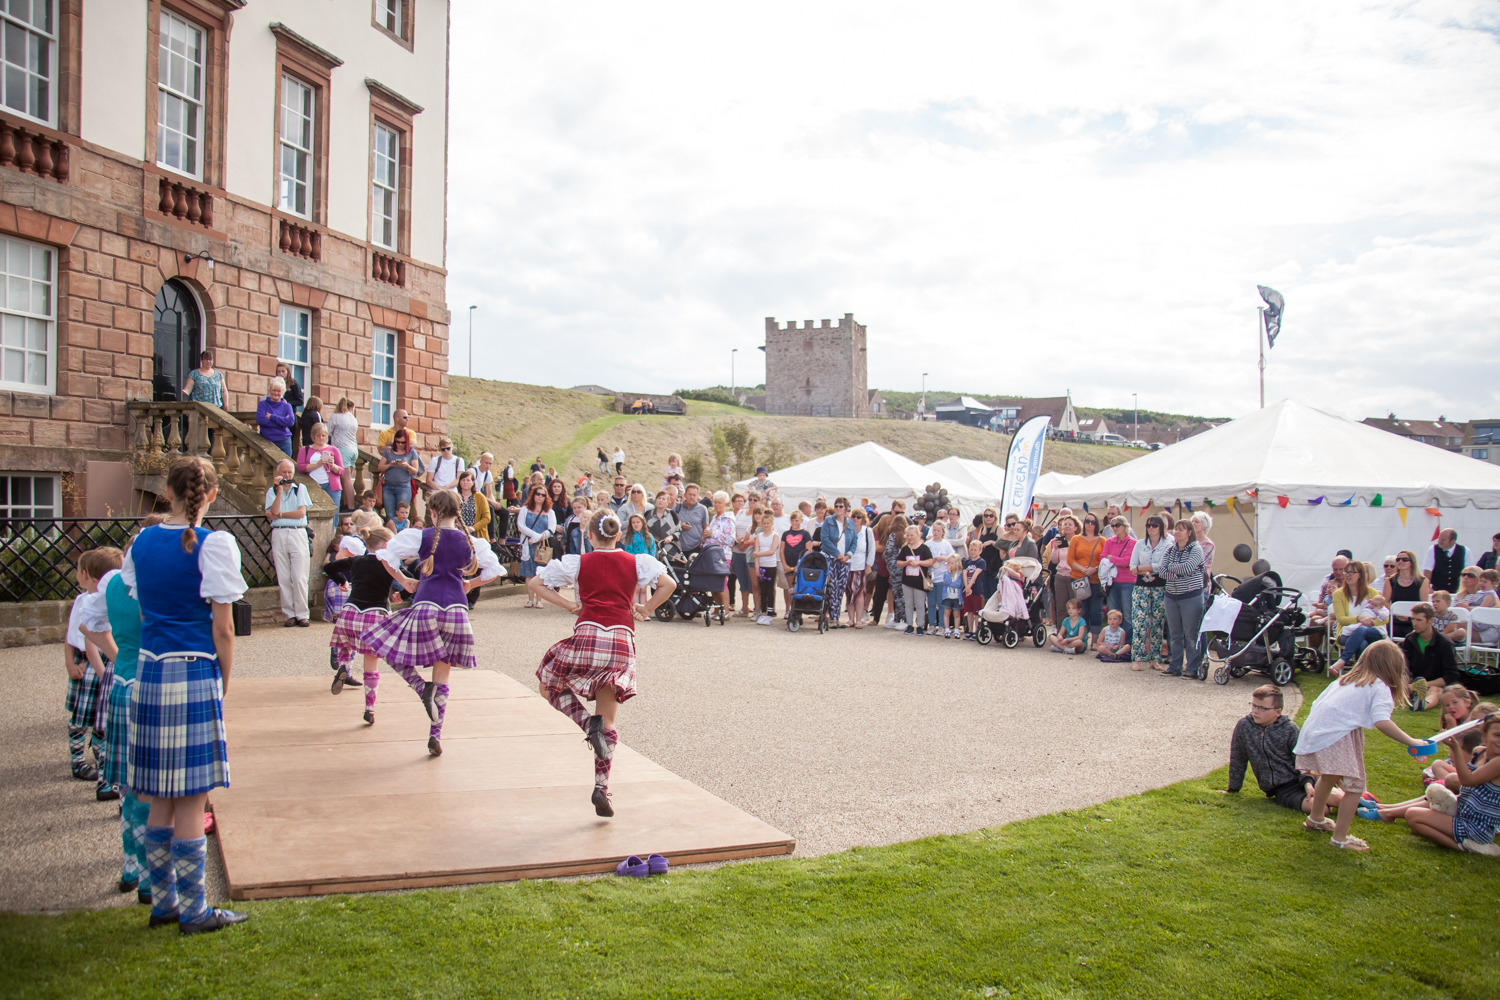 PICTORIAL_BERWICK_eyemouth-gunsgreen-extravaganza-photography-entertainment-party-event-photographer-harbour-gary-dunn-dancers-stilts-performances-speeches-day-out-summer-4602.jpg